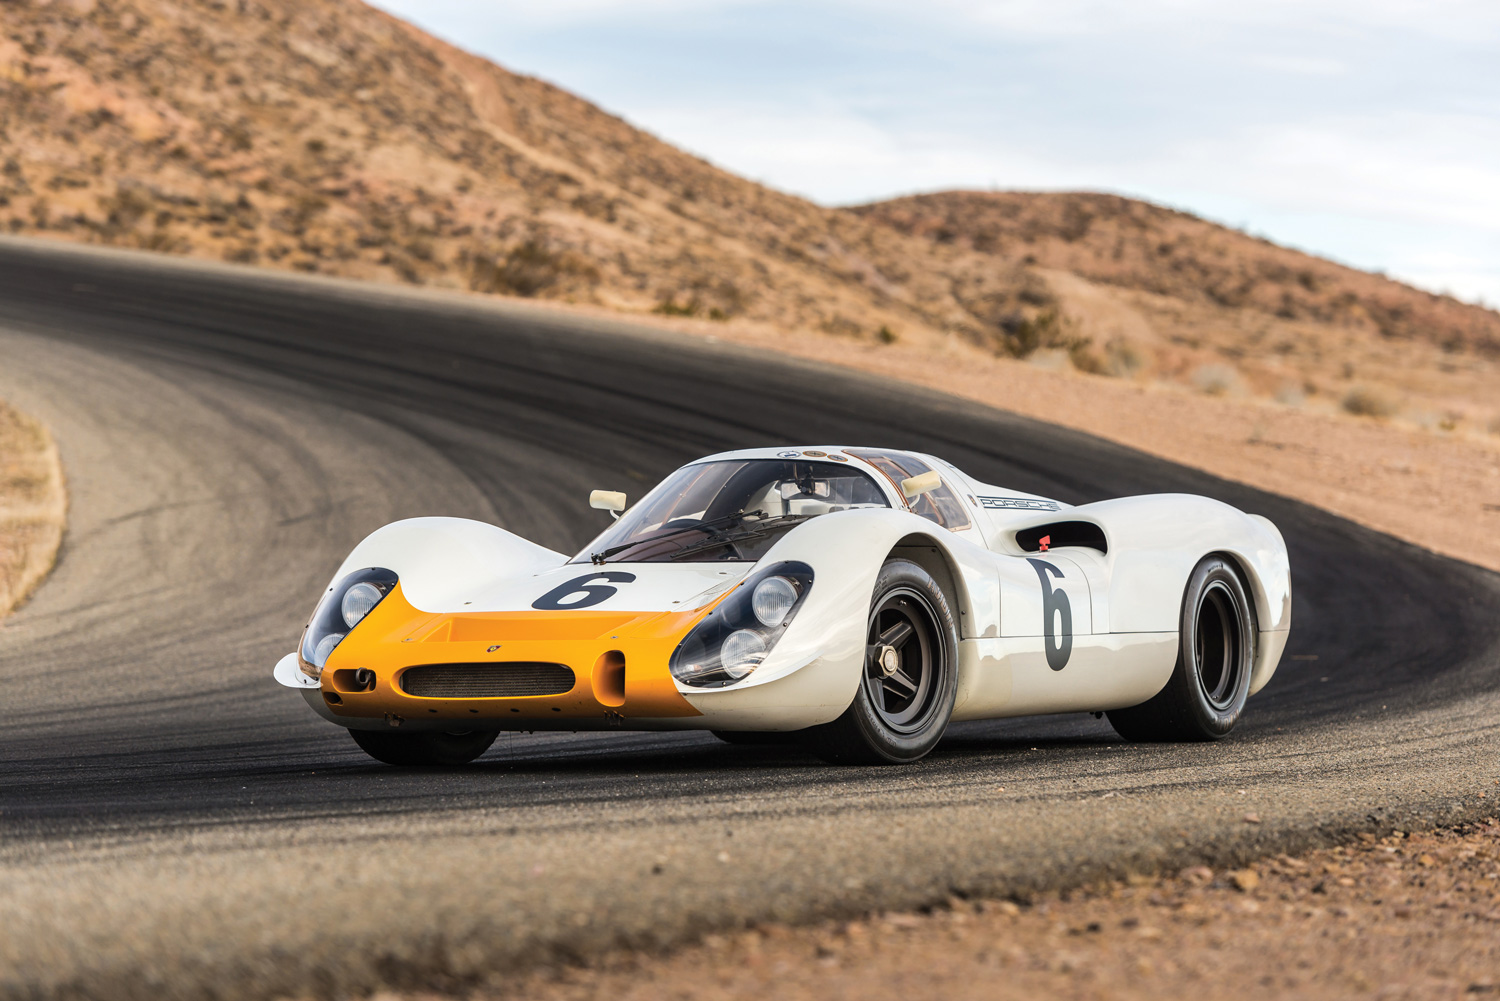 1968 Porsche 908 Works 'Short-Tail' Coupe